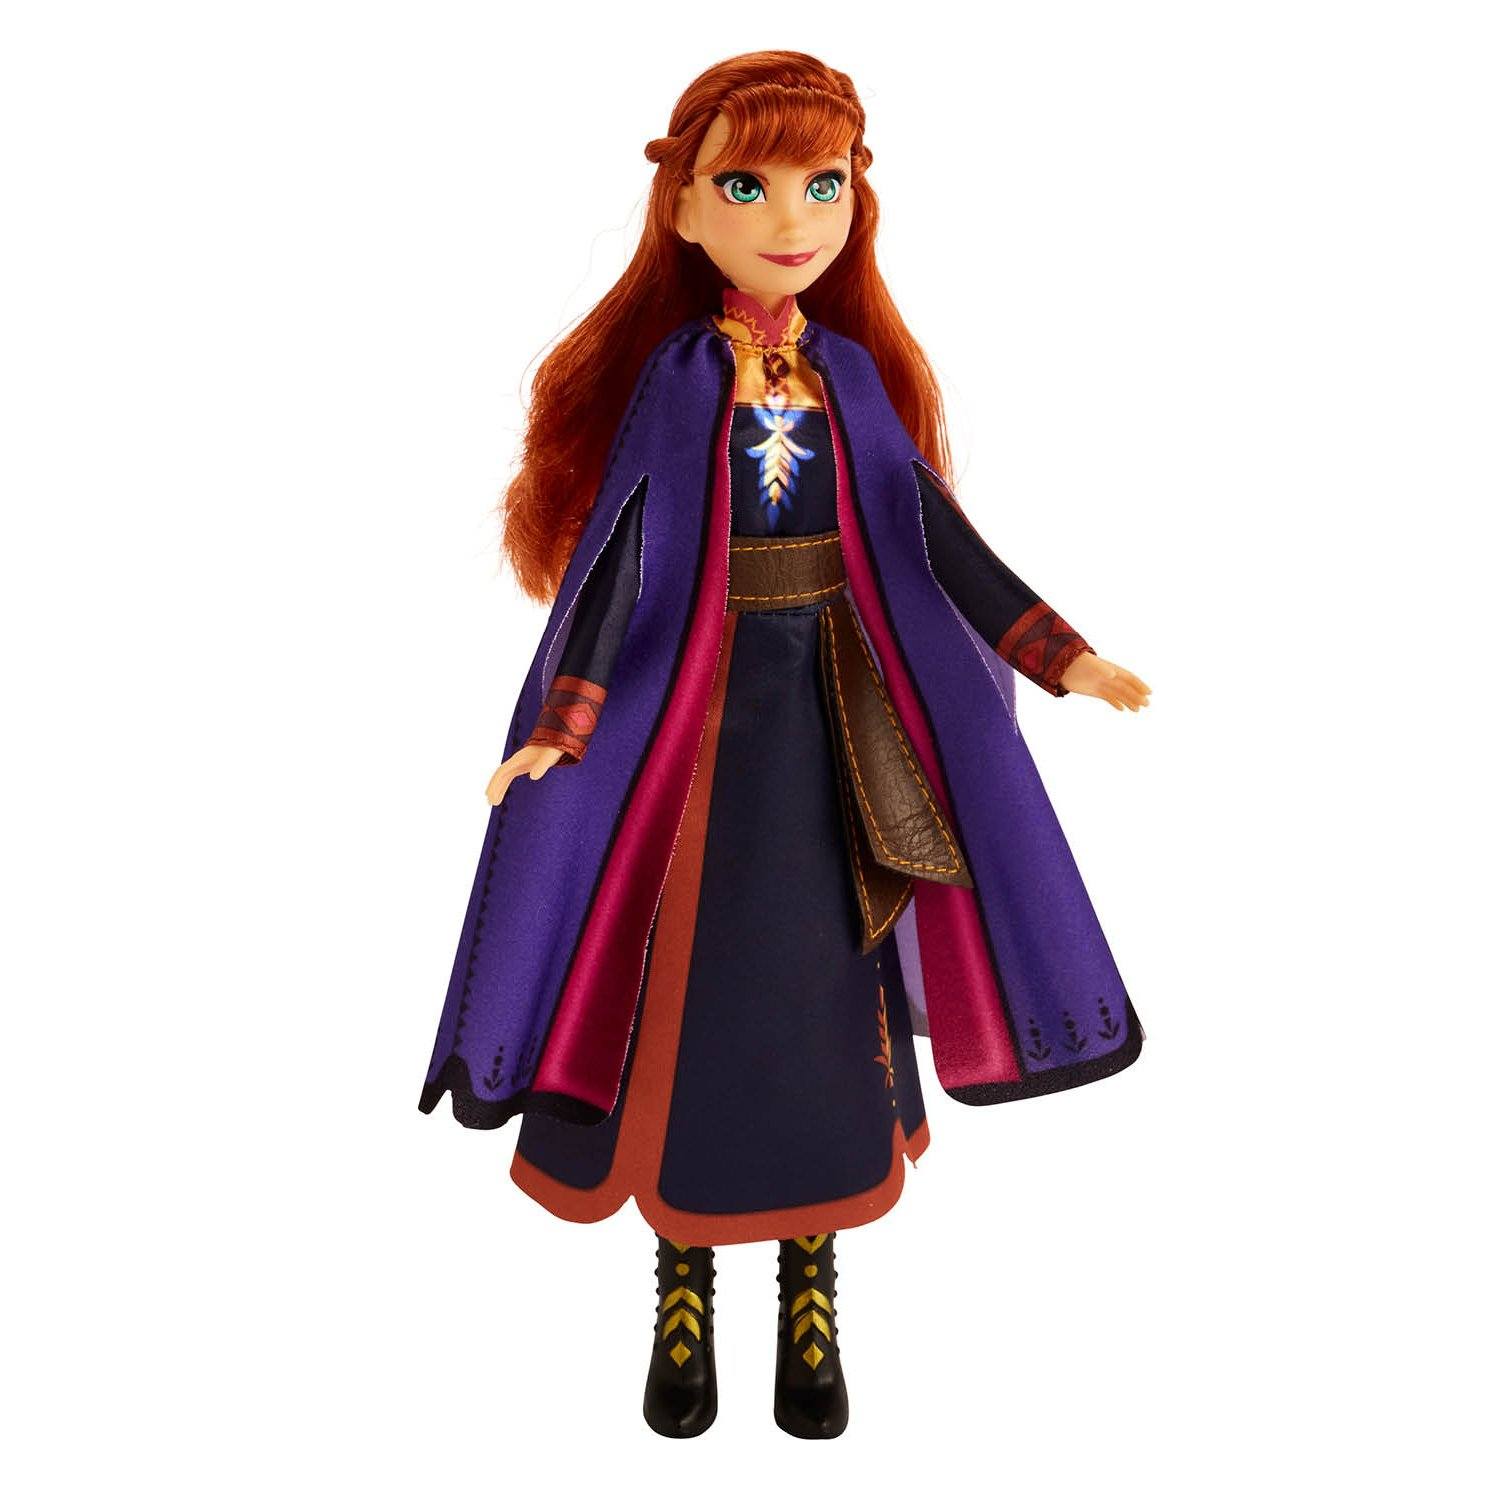 Disney Frozen 2 Singing Anna Fashion Doll with Music